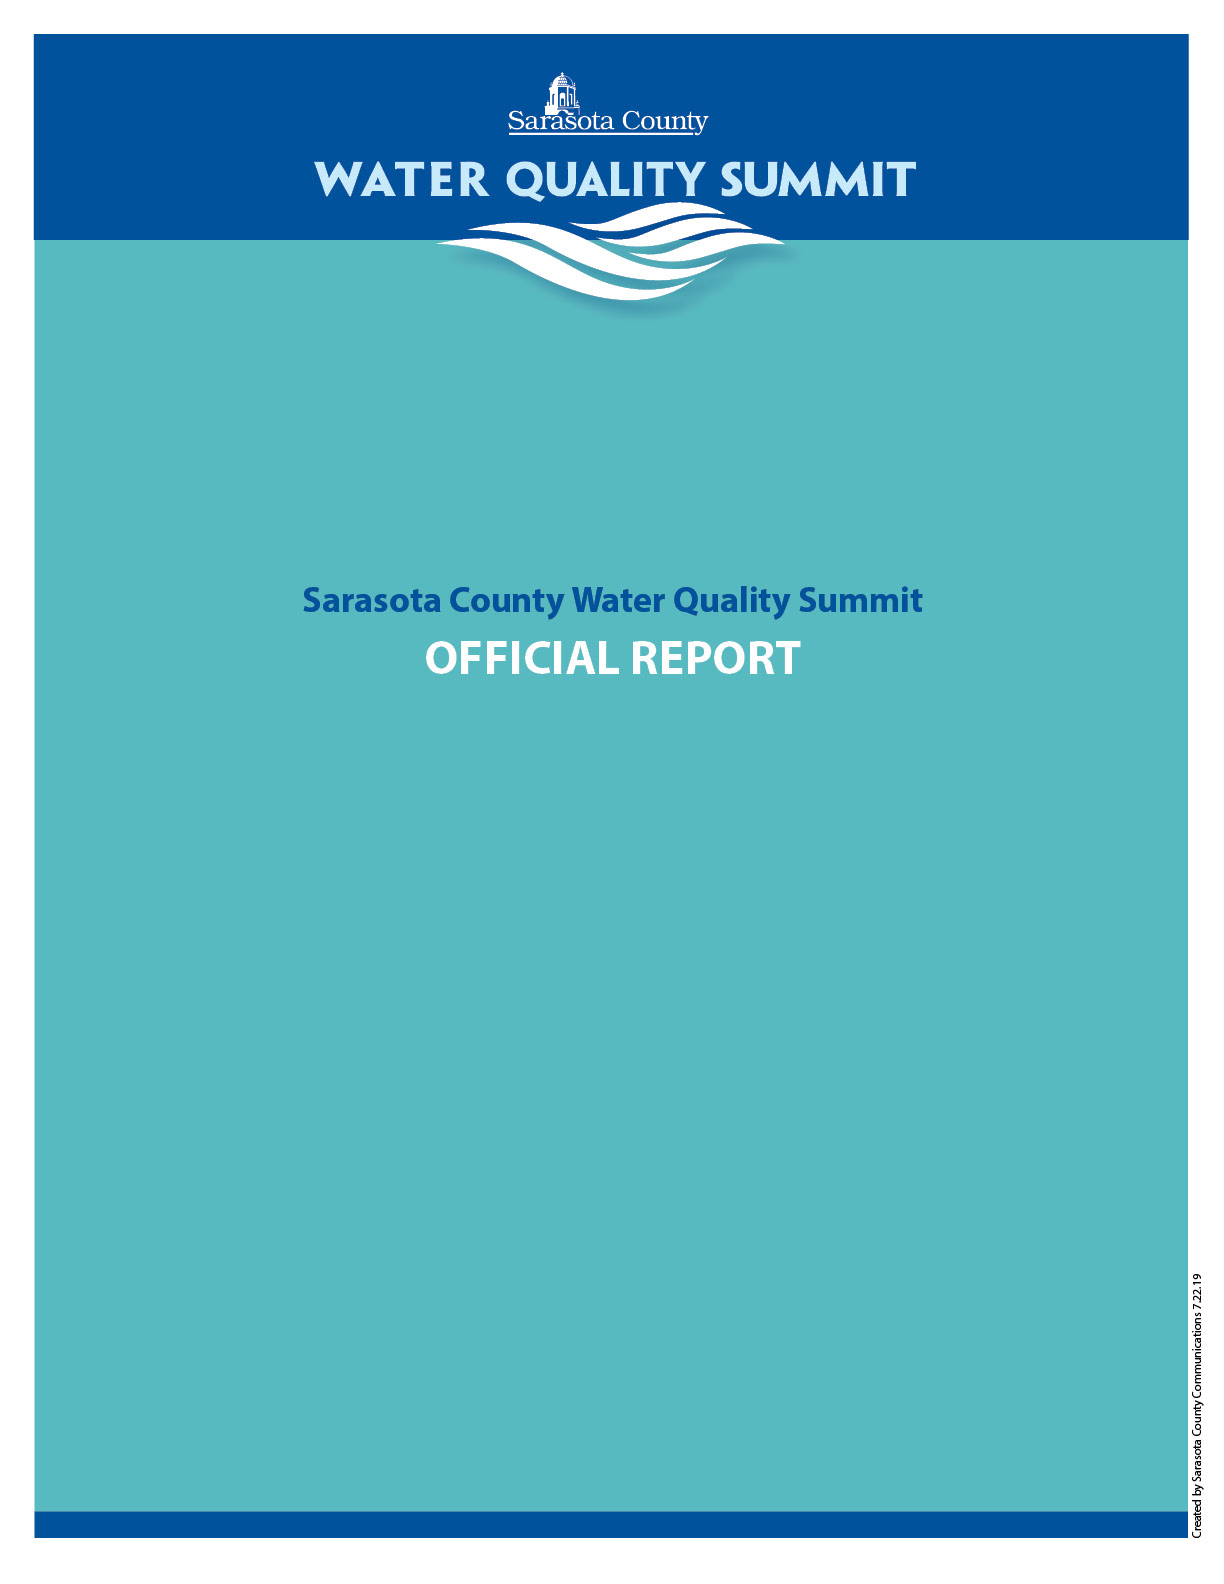 Water Quality Summit Report Cover